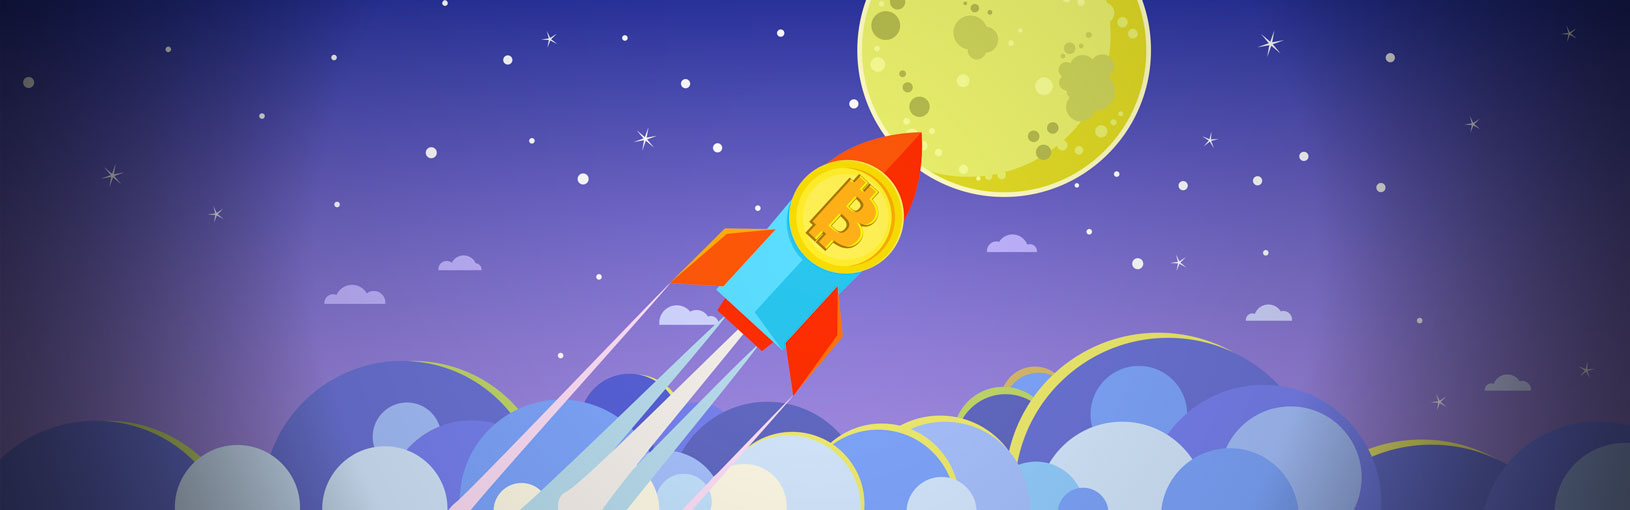 When Moon? Some experts think soon » Brave New Coin